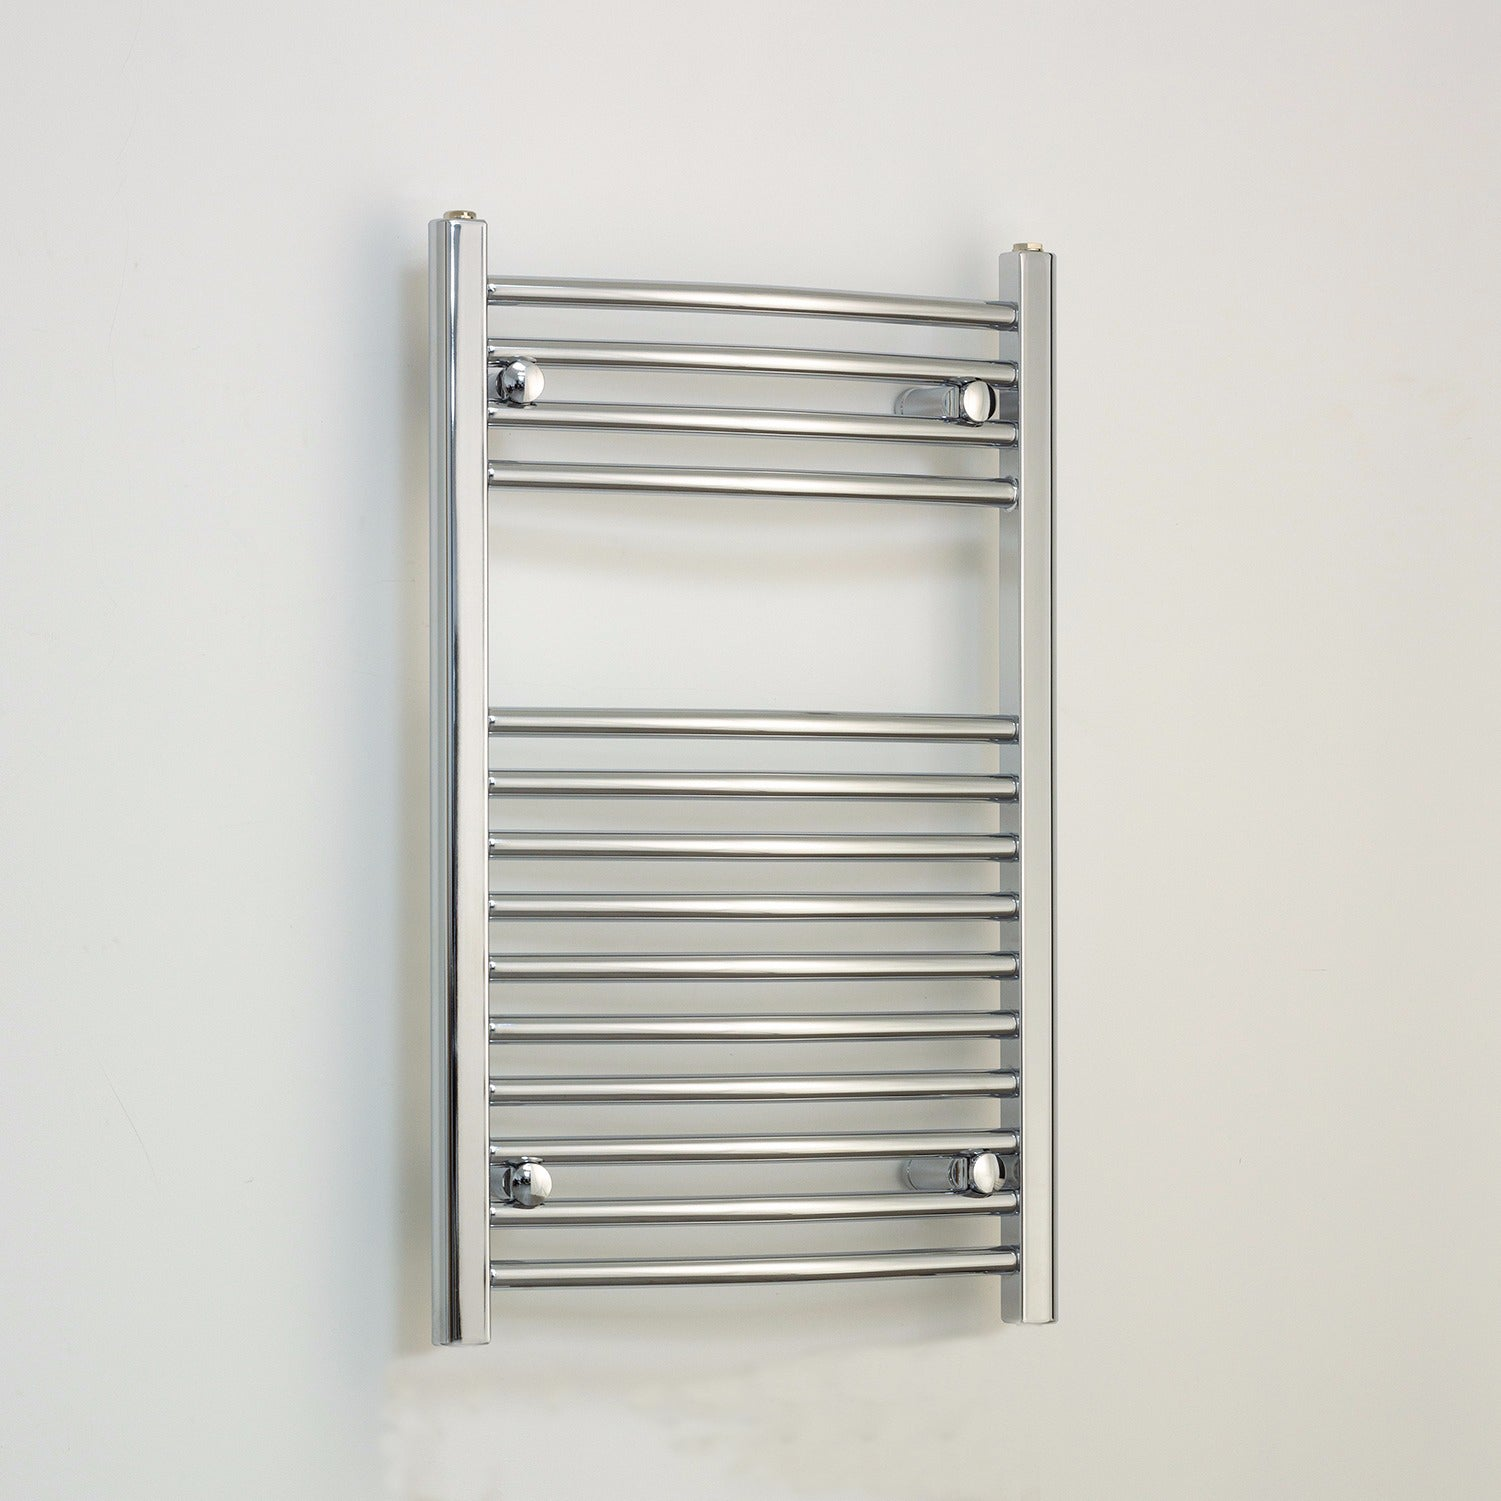 600mm Wide 800mm High Chrome Towel Rail Radiator